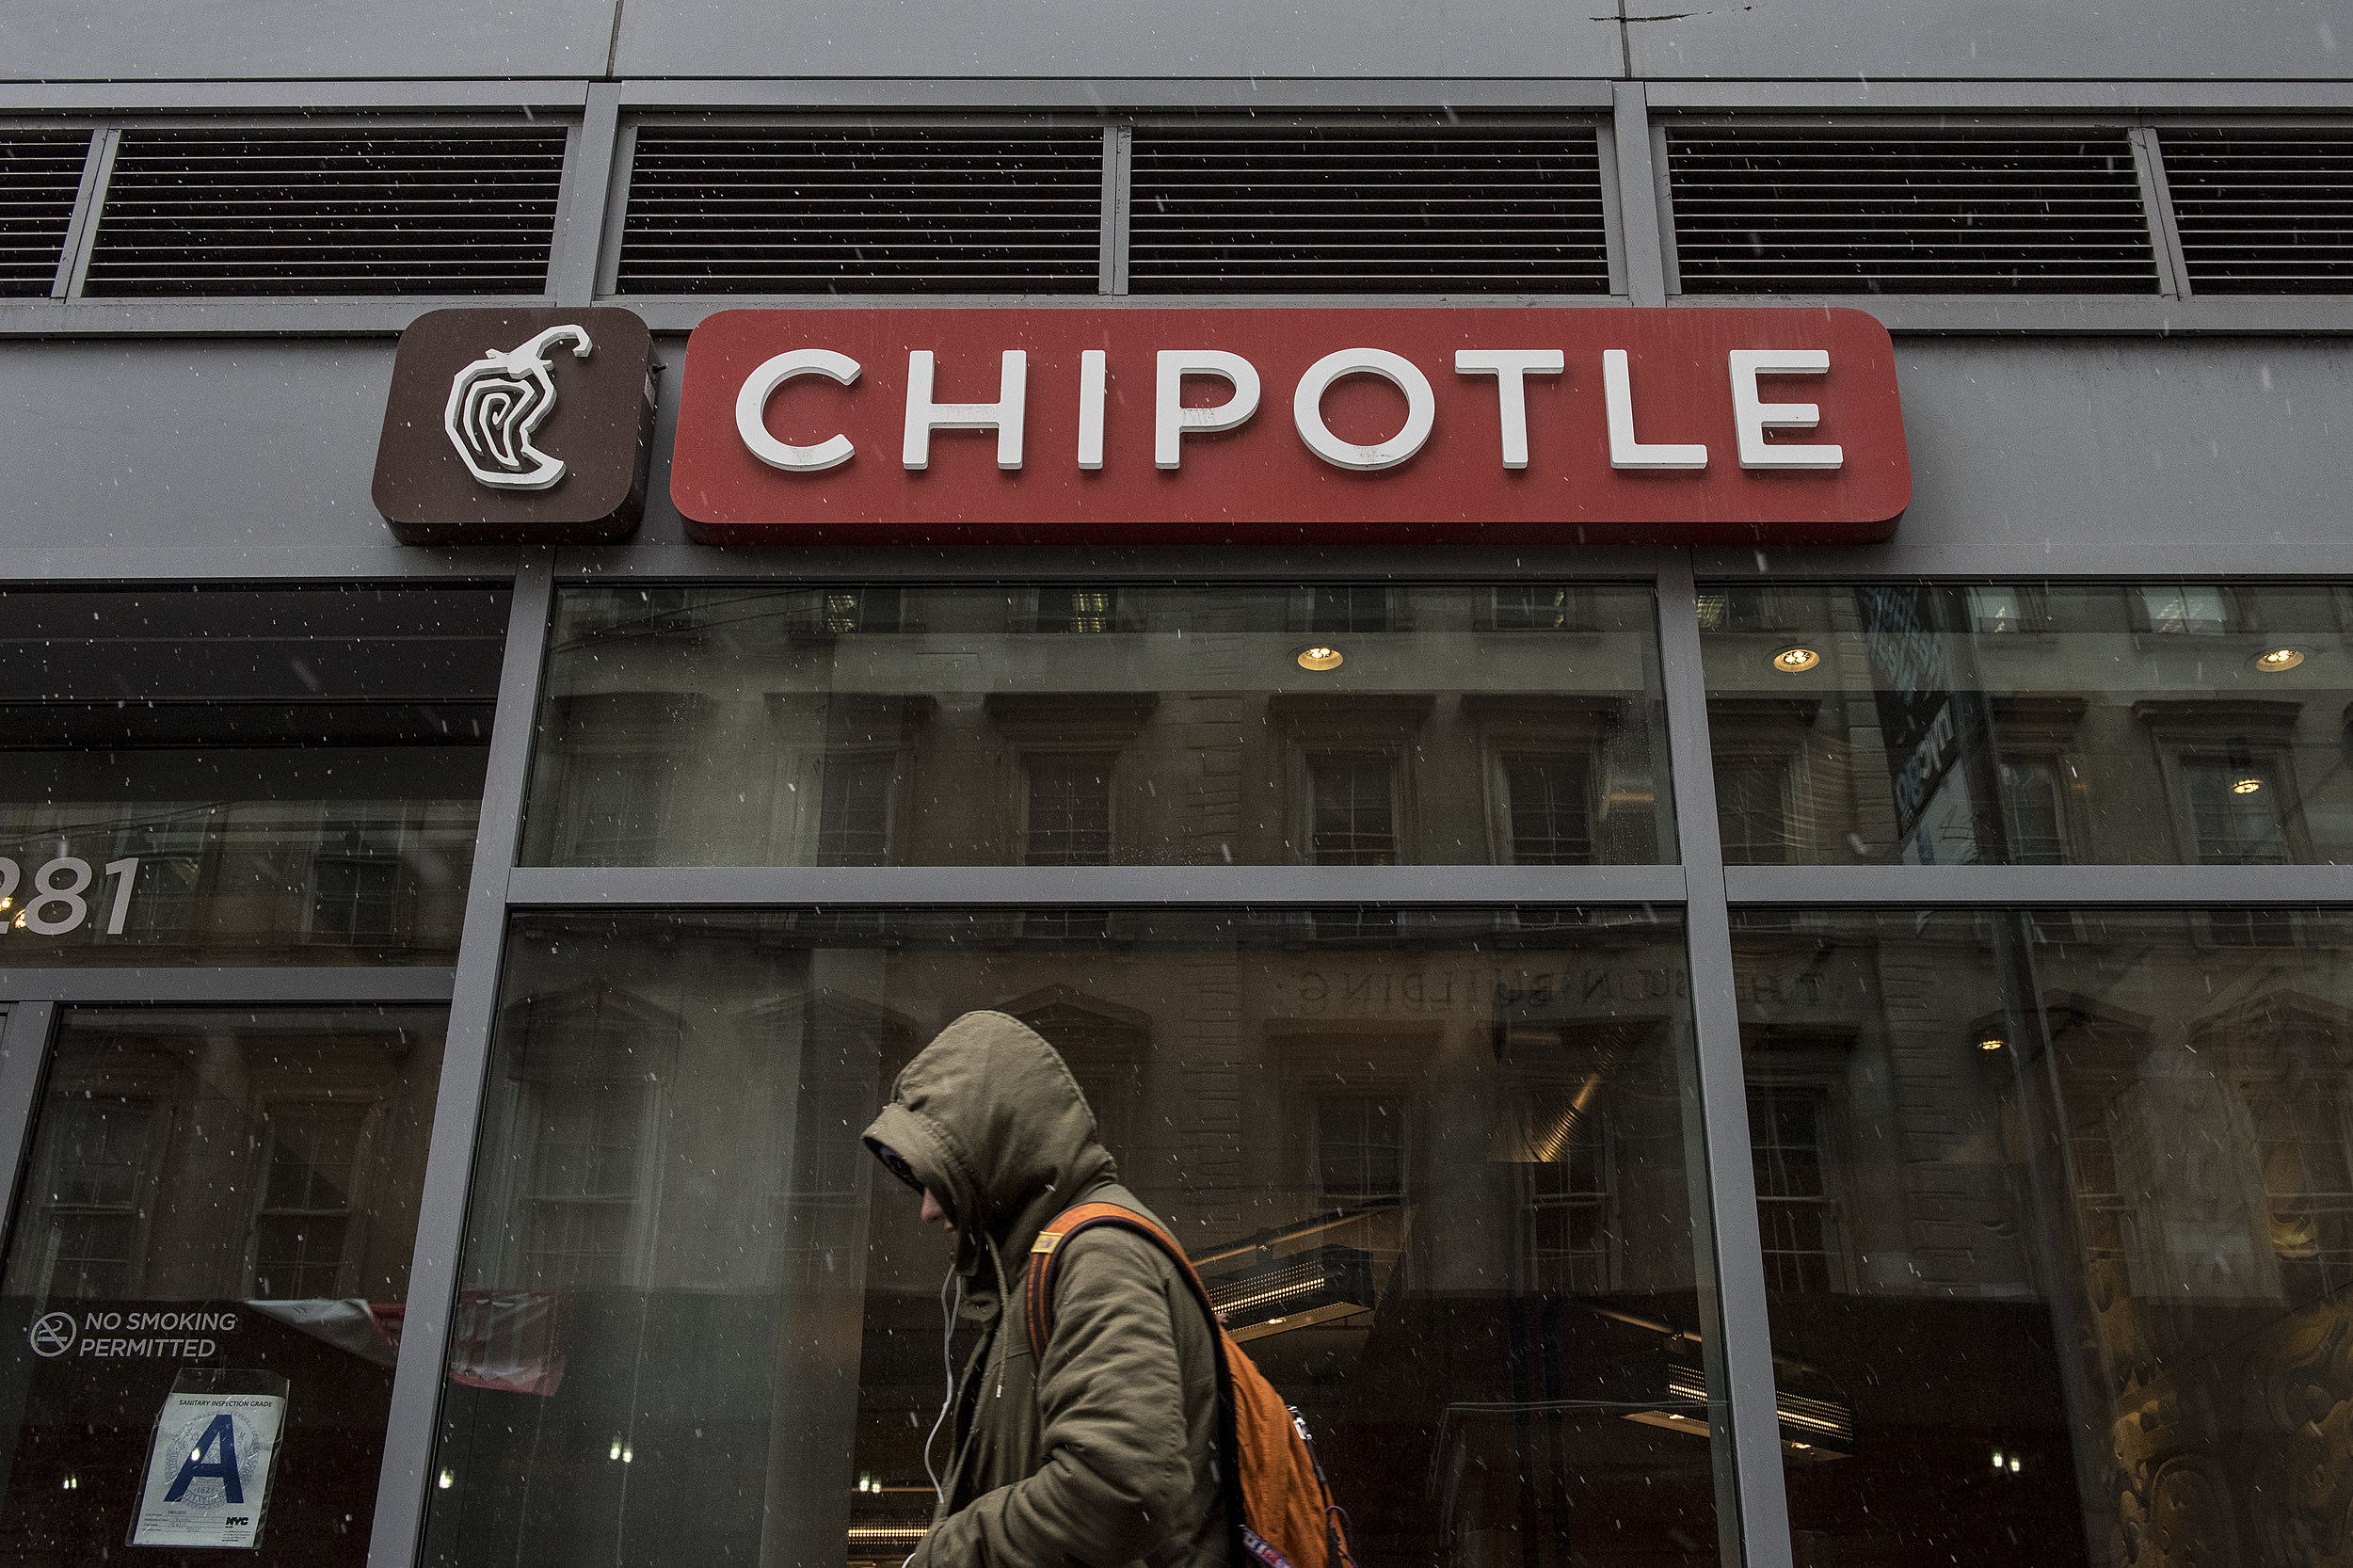 Chipotle Locations in Montgomery County Named in Data Breach